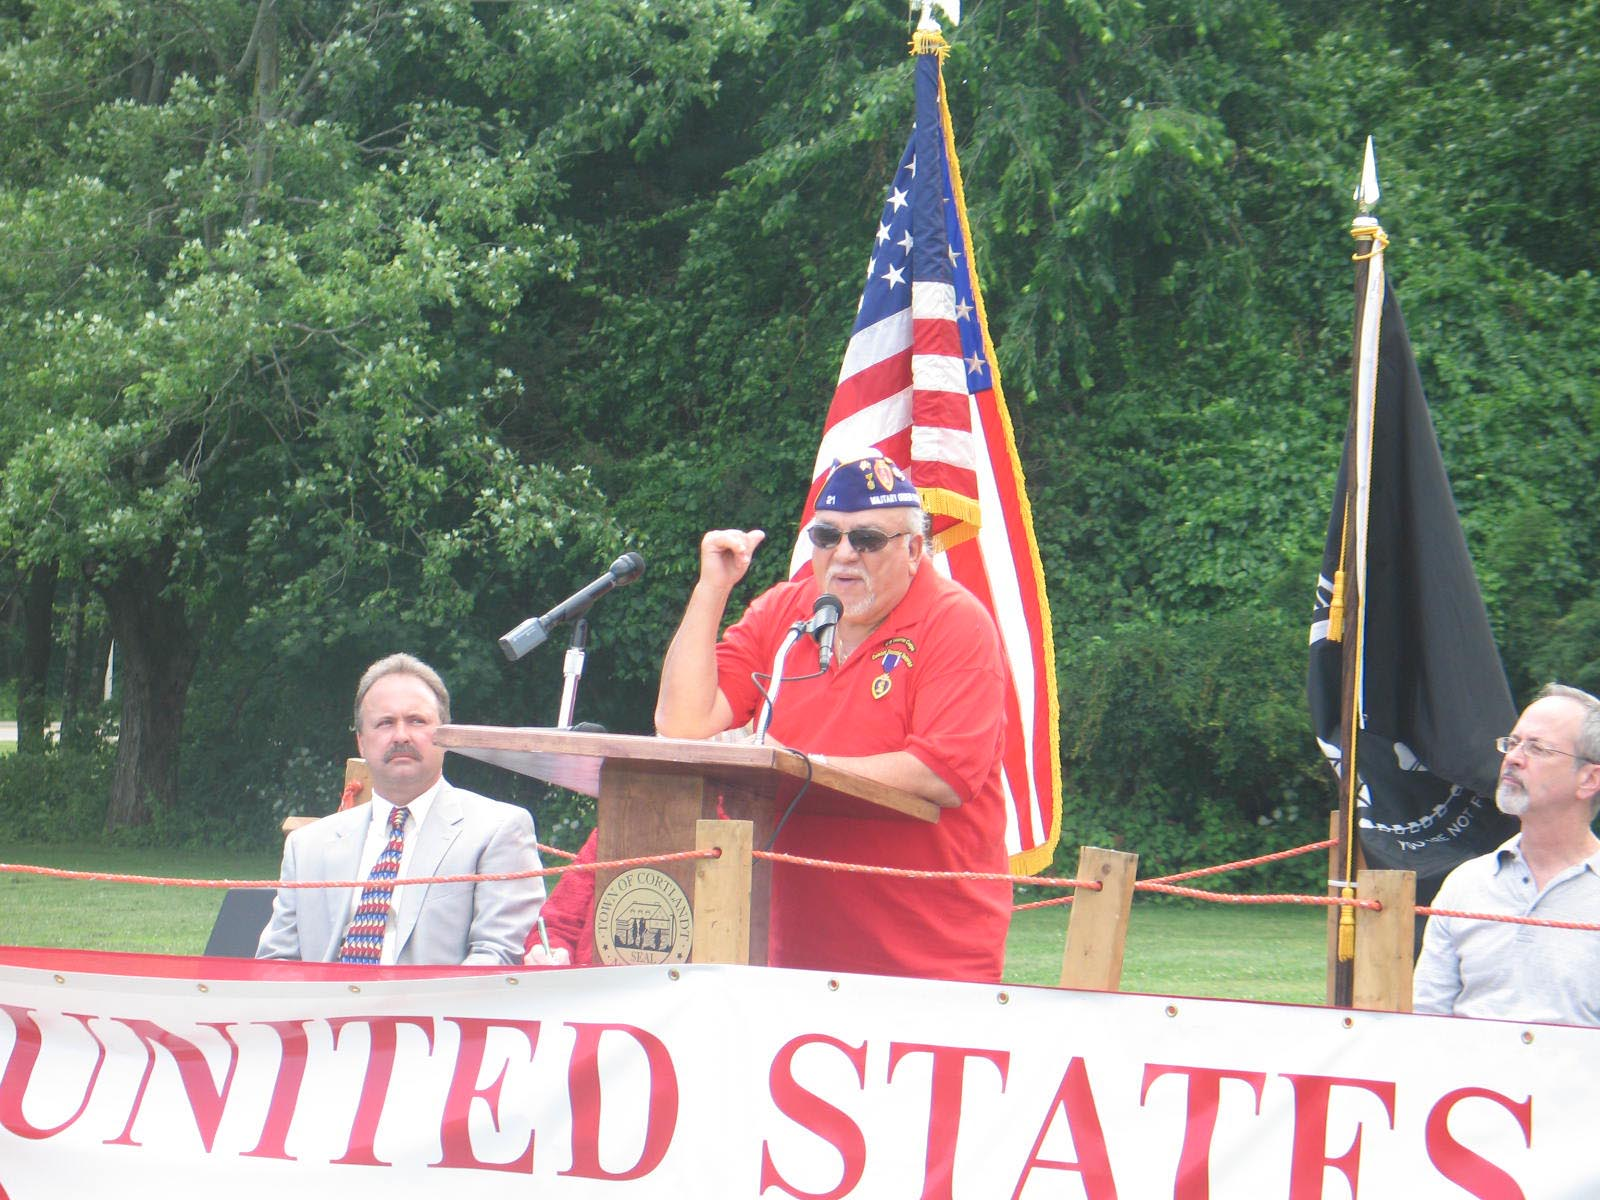 William Nazario, head of the Cortlandt Veterans Committee and a Vietnam Purple Heart recipient, was one of the speakers during the Flag Day rally in Cortlandt.